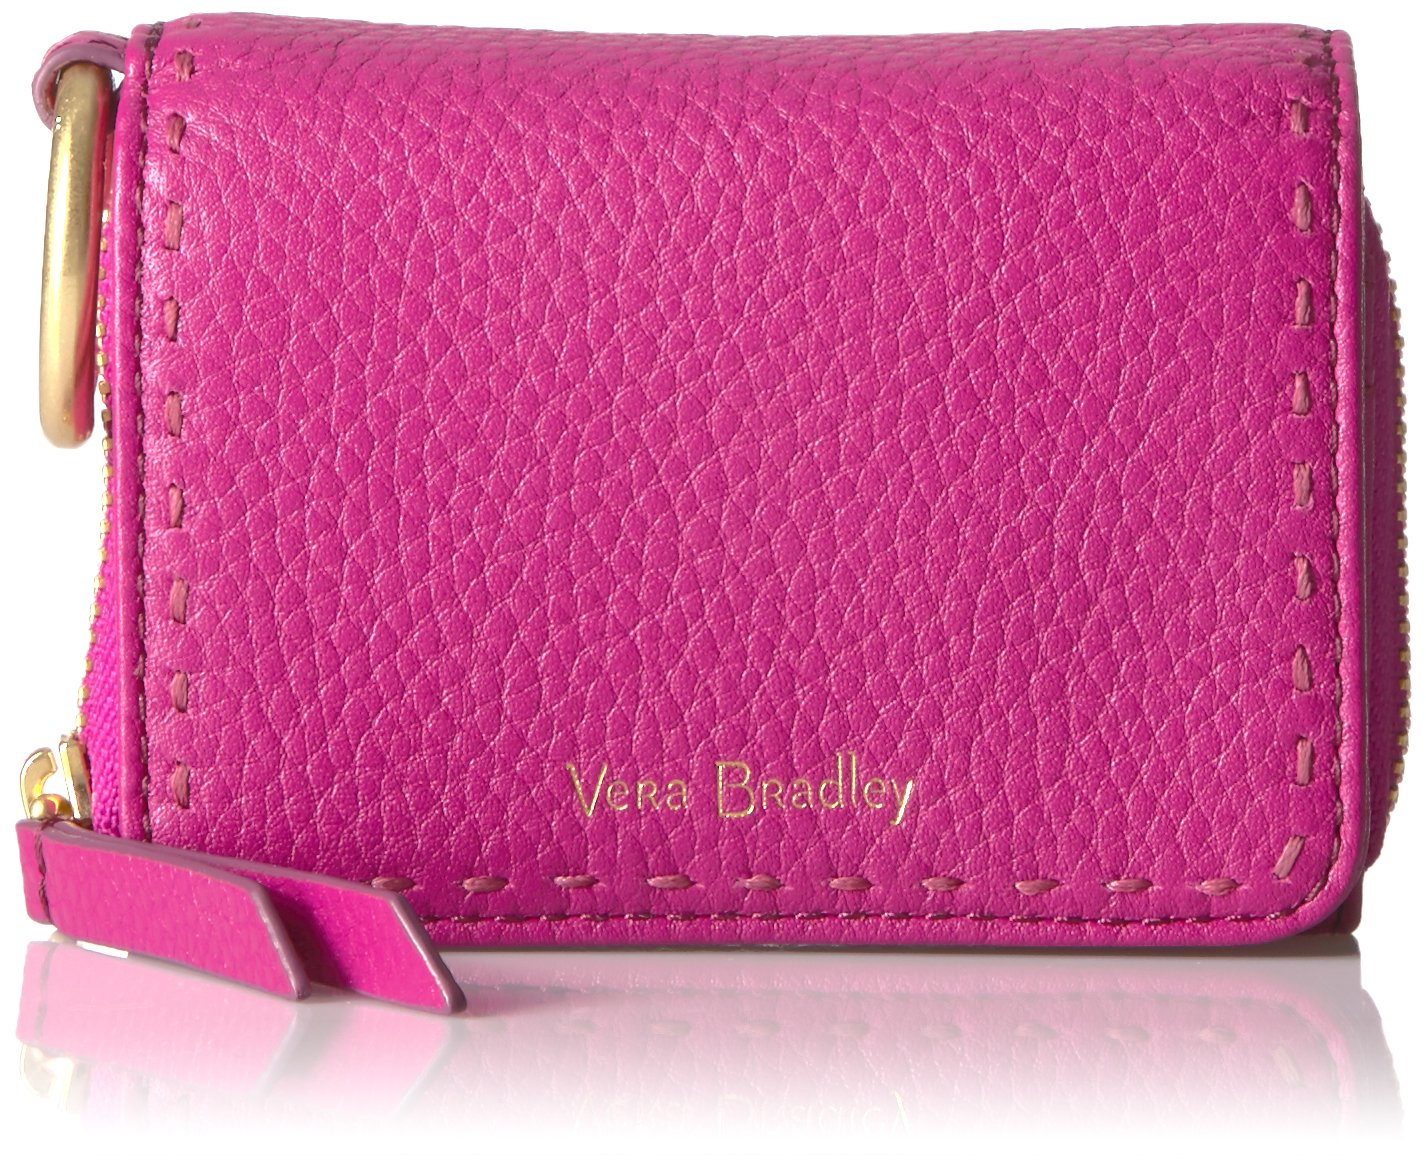 Vera Bradley Rfid Mallory Card Case Credit Card Holder by Vera Bradley (Image #1)